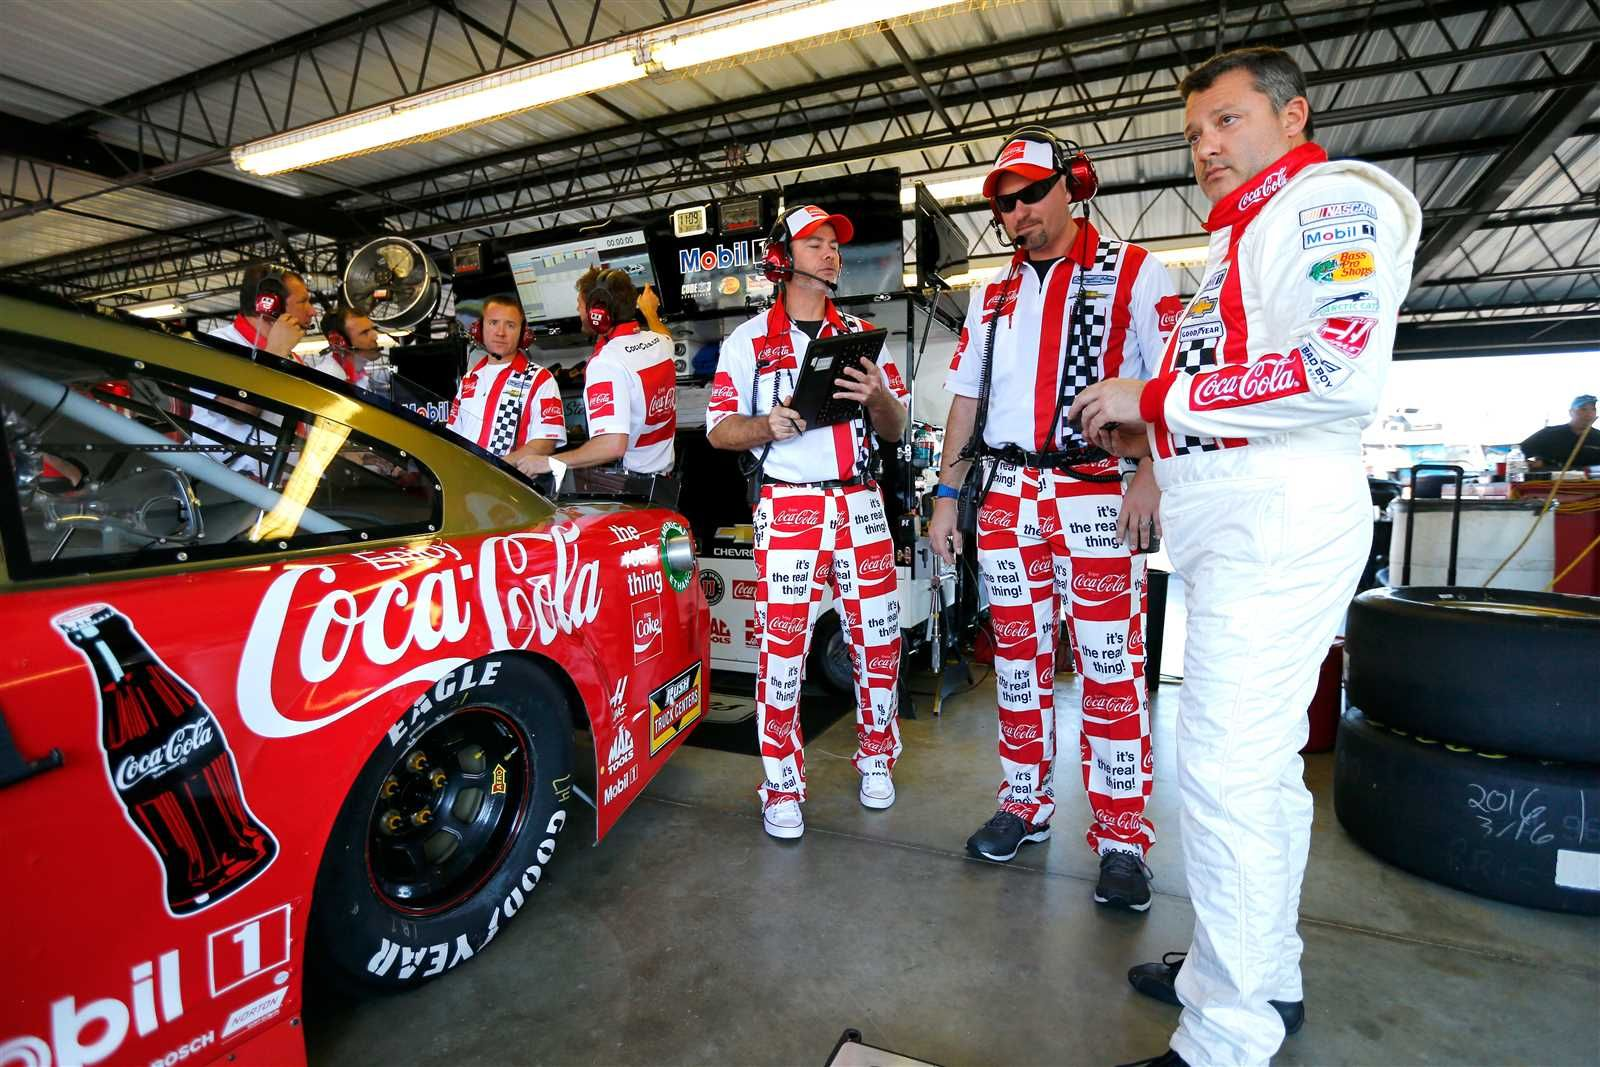 Gallery Landing Page Official Site Of Nascar Tony Stewart Tony Stewart Racing Nascar